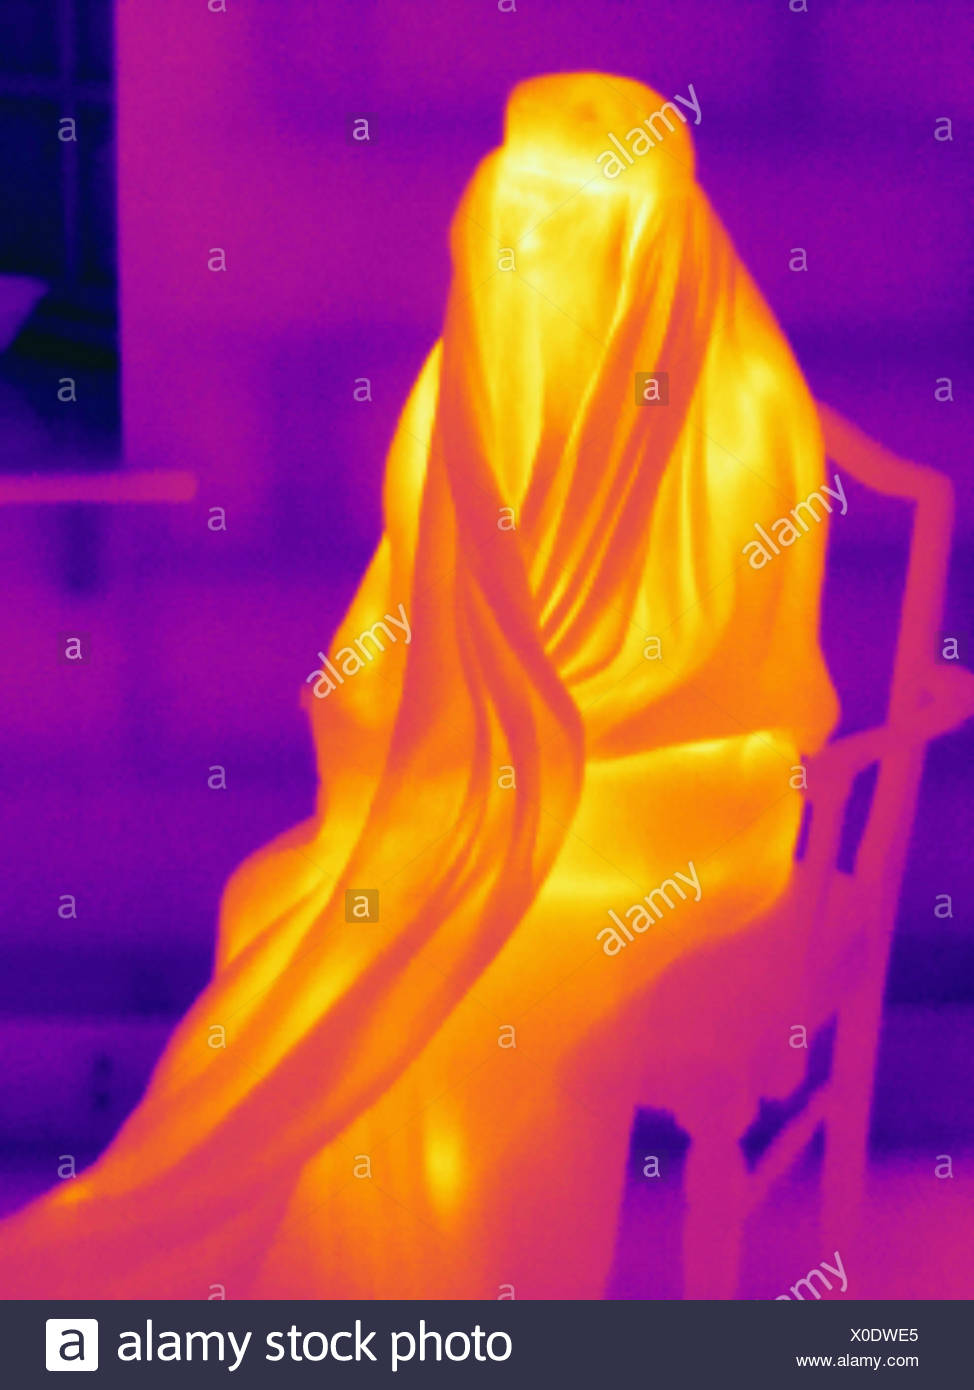 Thermal image muslim woman wearing burka - Stock Image